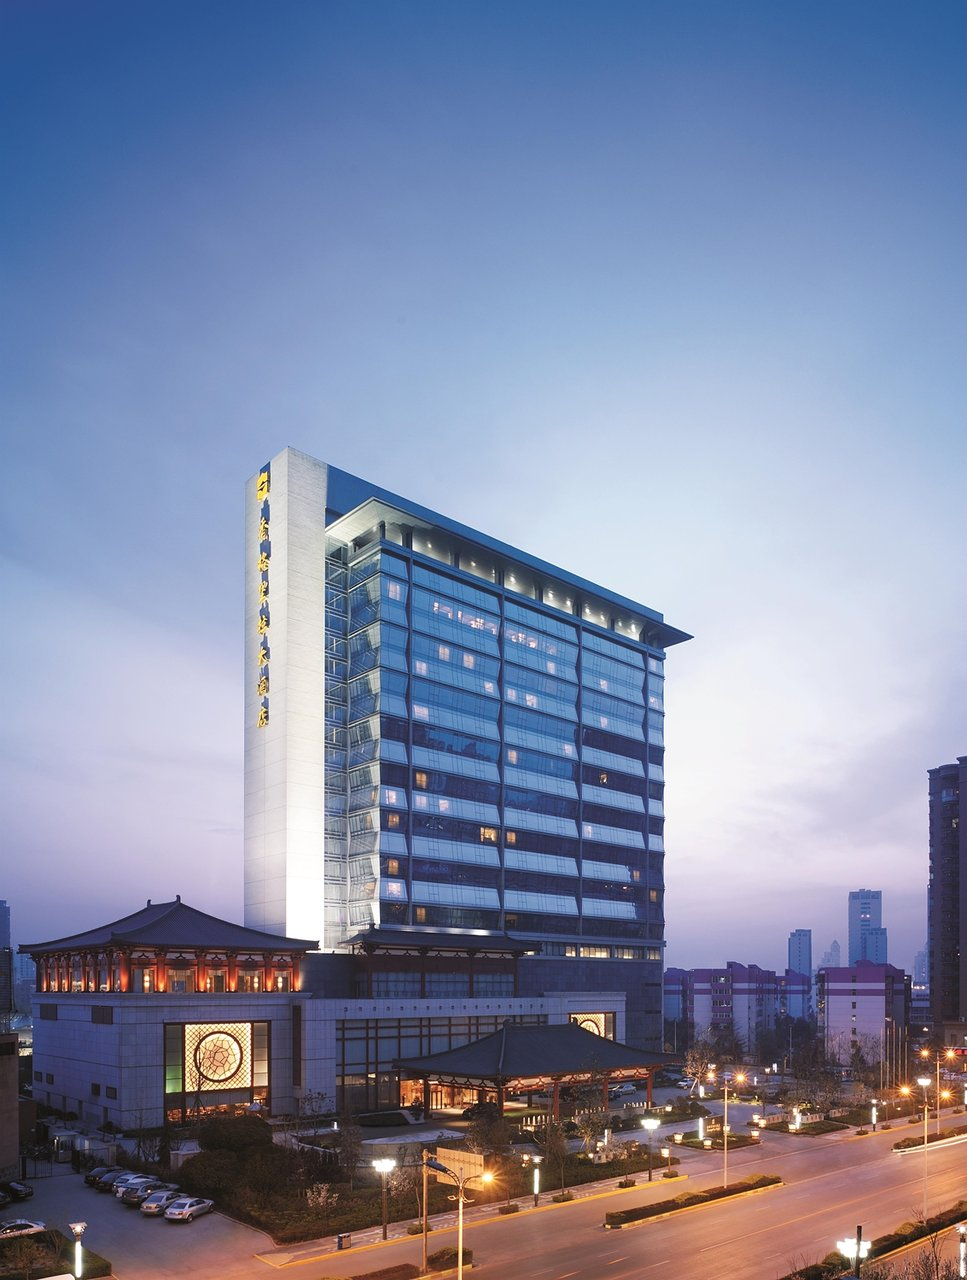 shangri la hotel xian 115 1 3 7 updated 2019 prices rh tripadvisor com